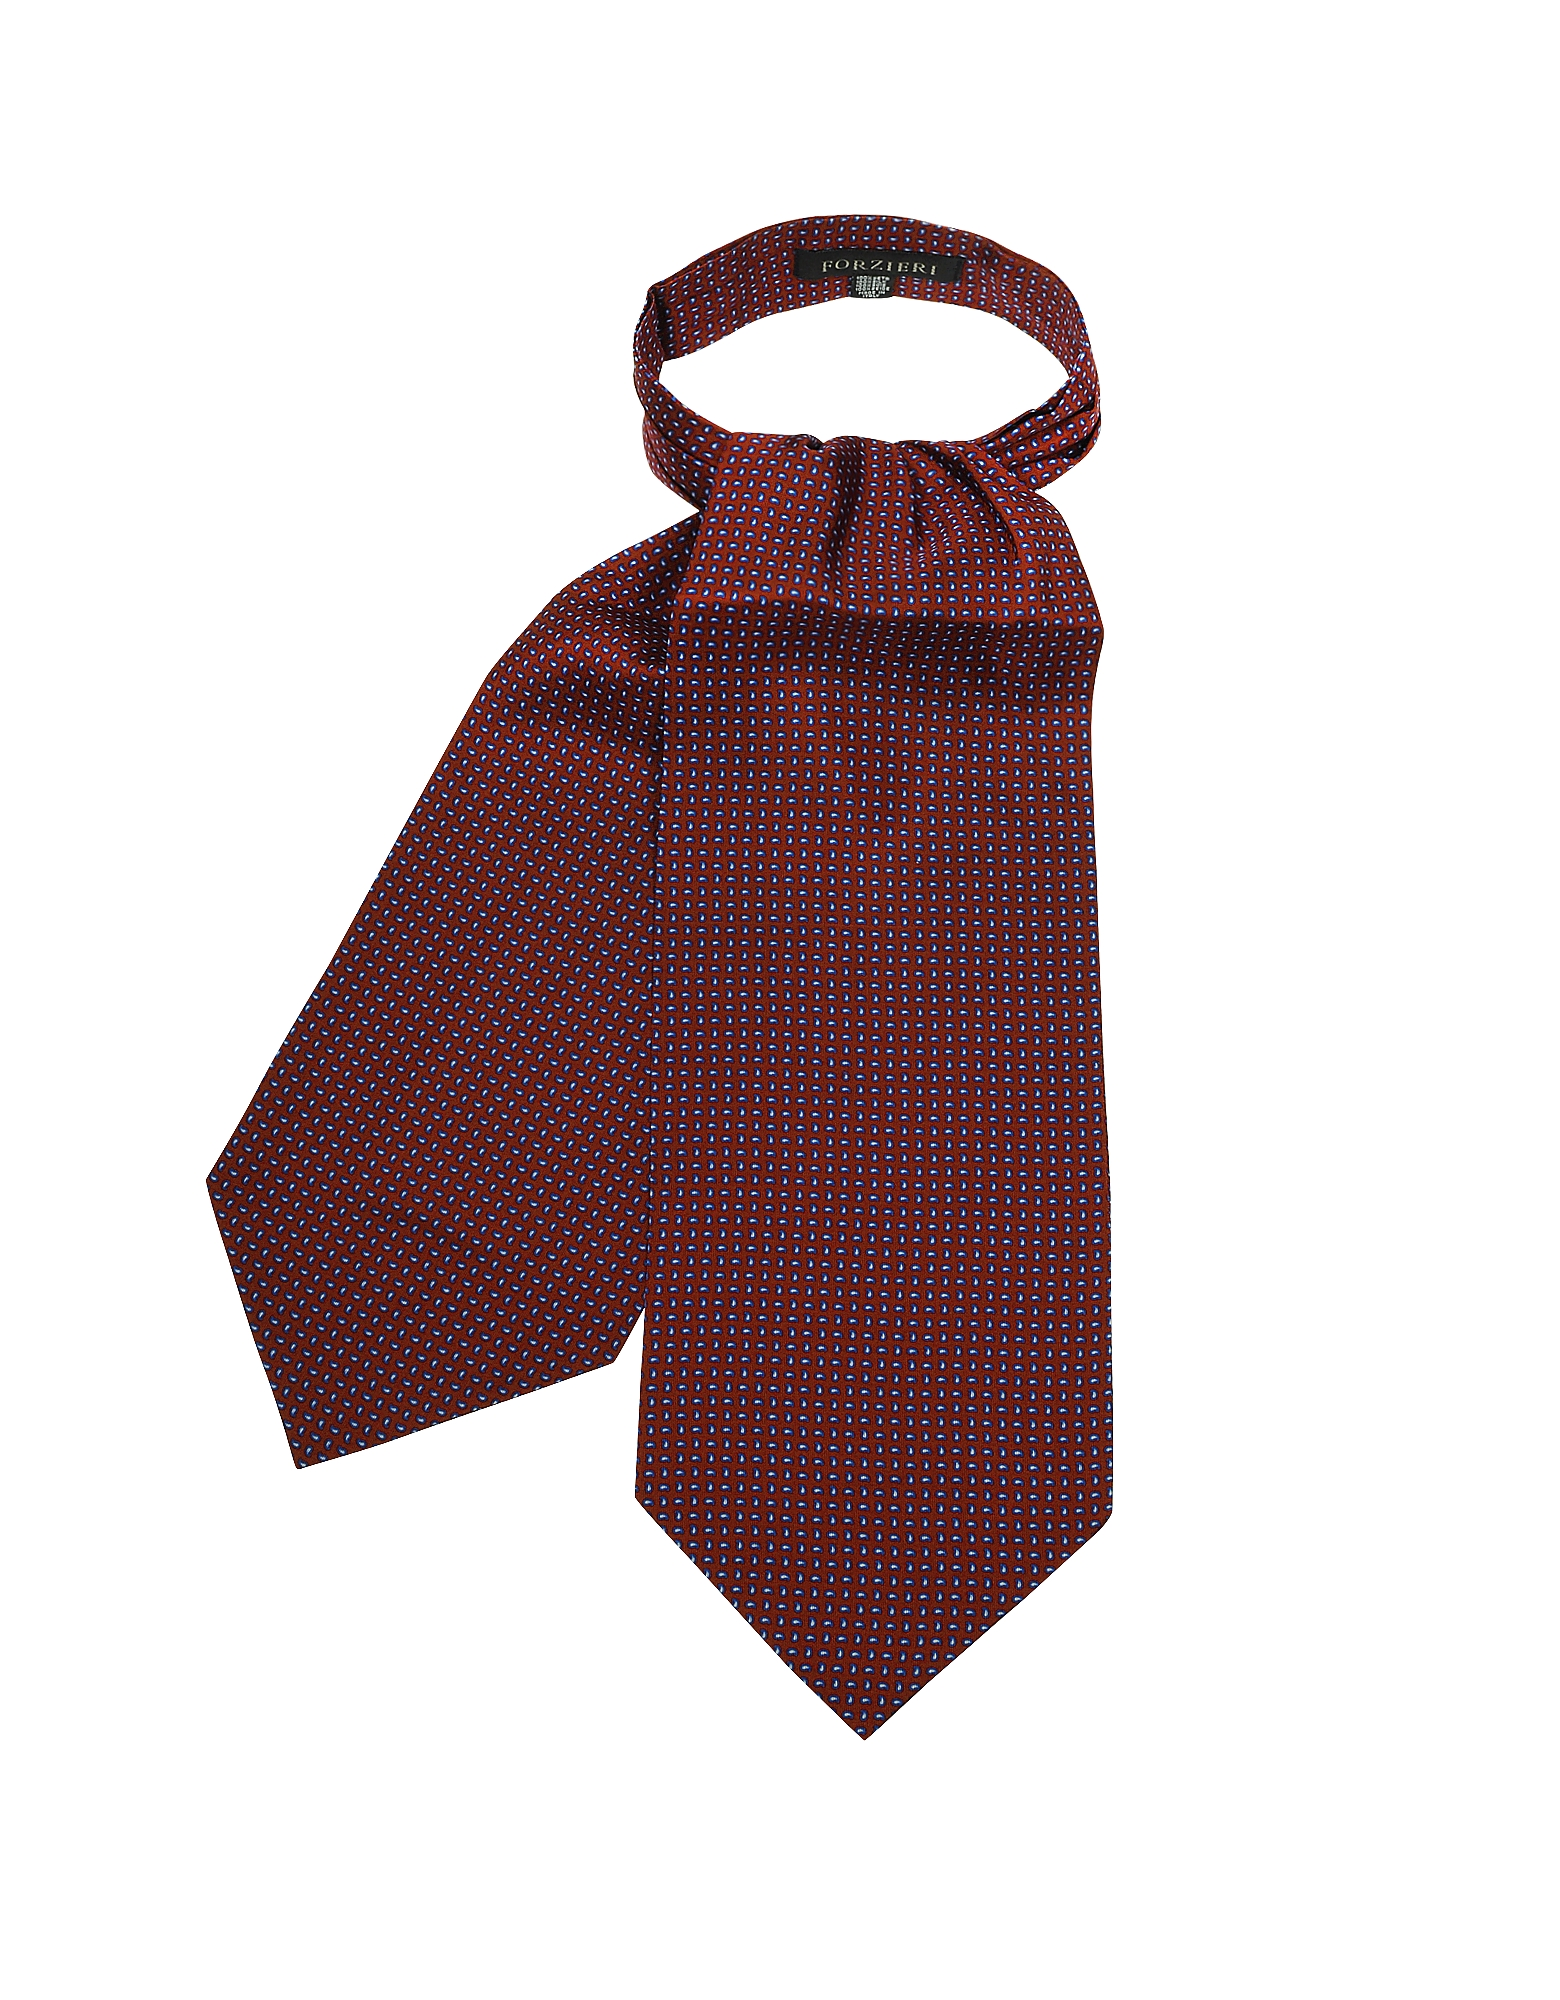 Forzieri Designer Ascot ties, Micro Feather Red Twill Silk Ascot Tie